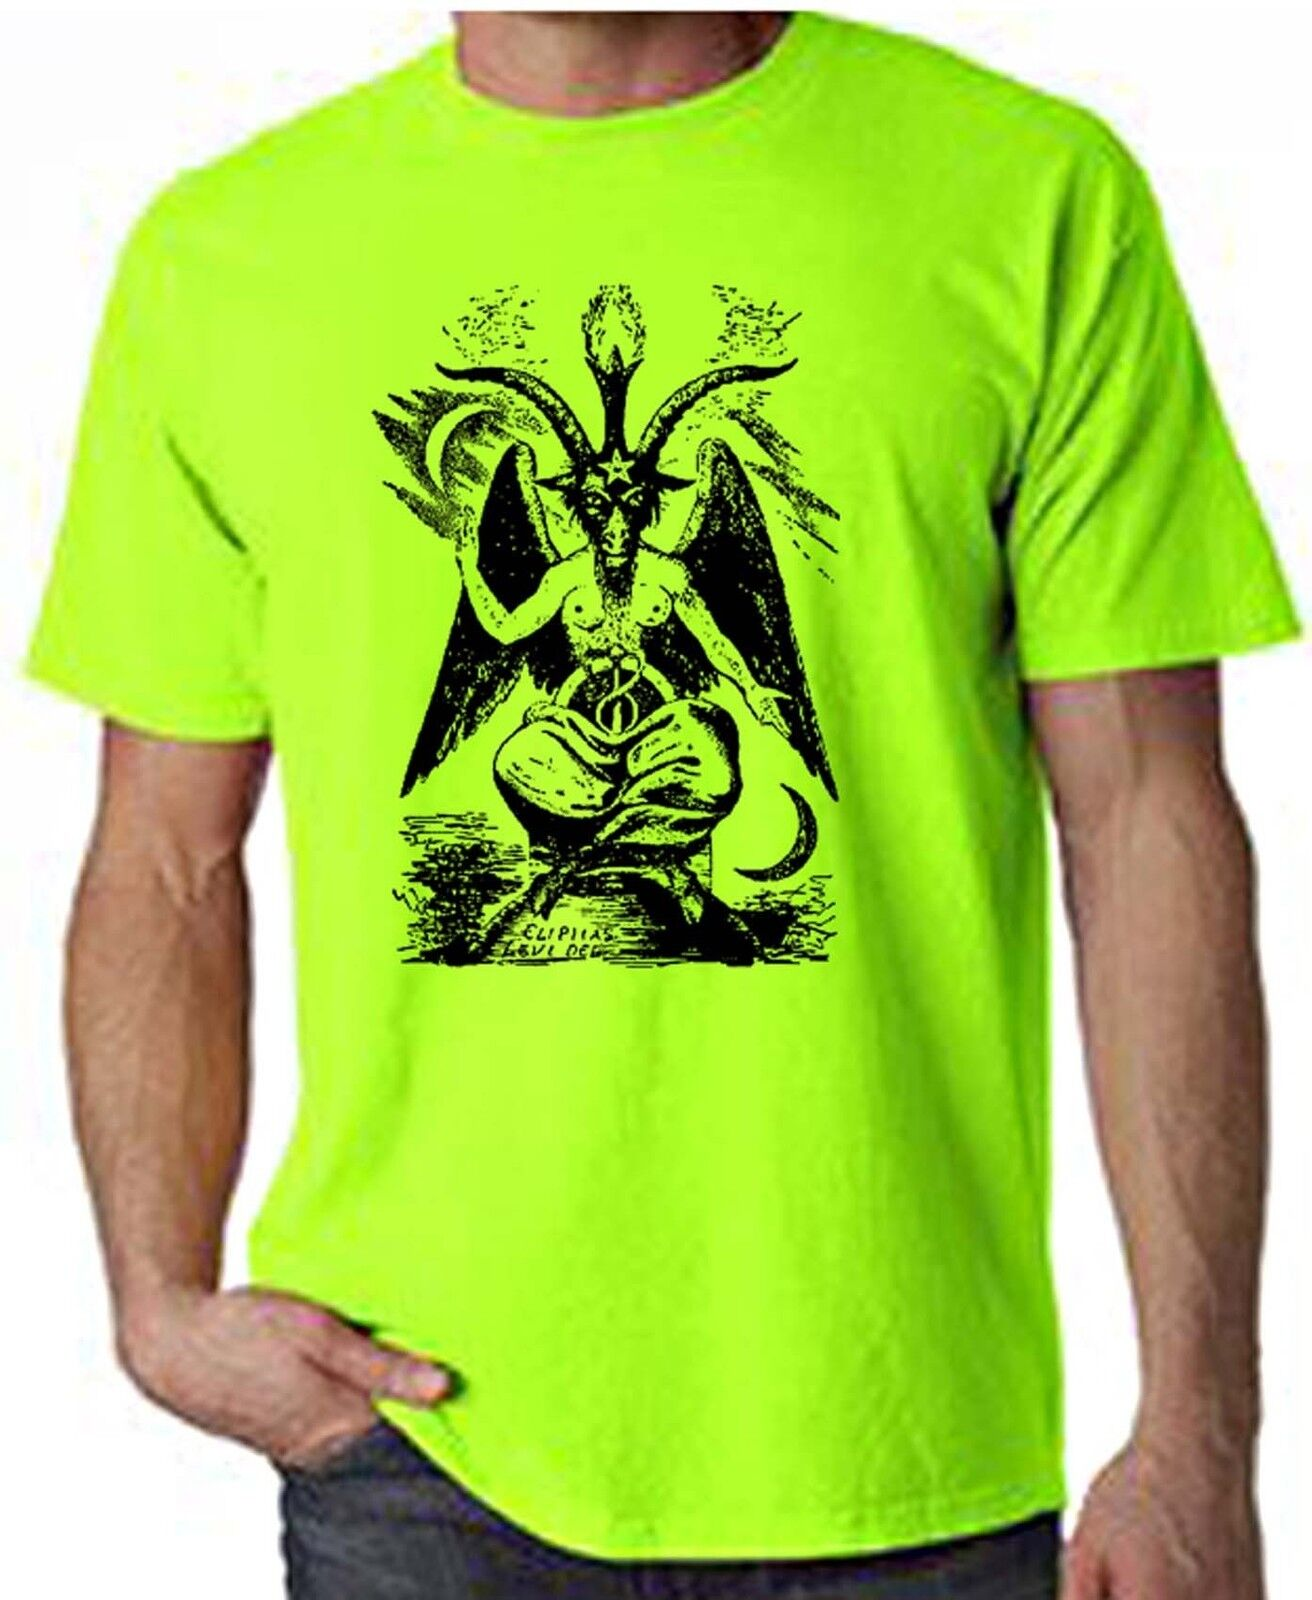 Pagan Druid Wicca Witchcraft Satanic GOAT OF MENDES NEON T-SHIRT FREE P/&P